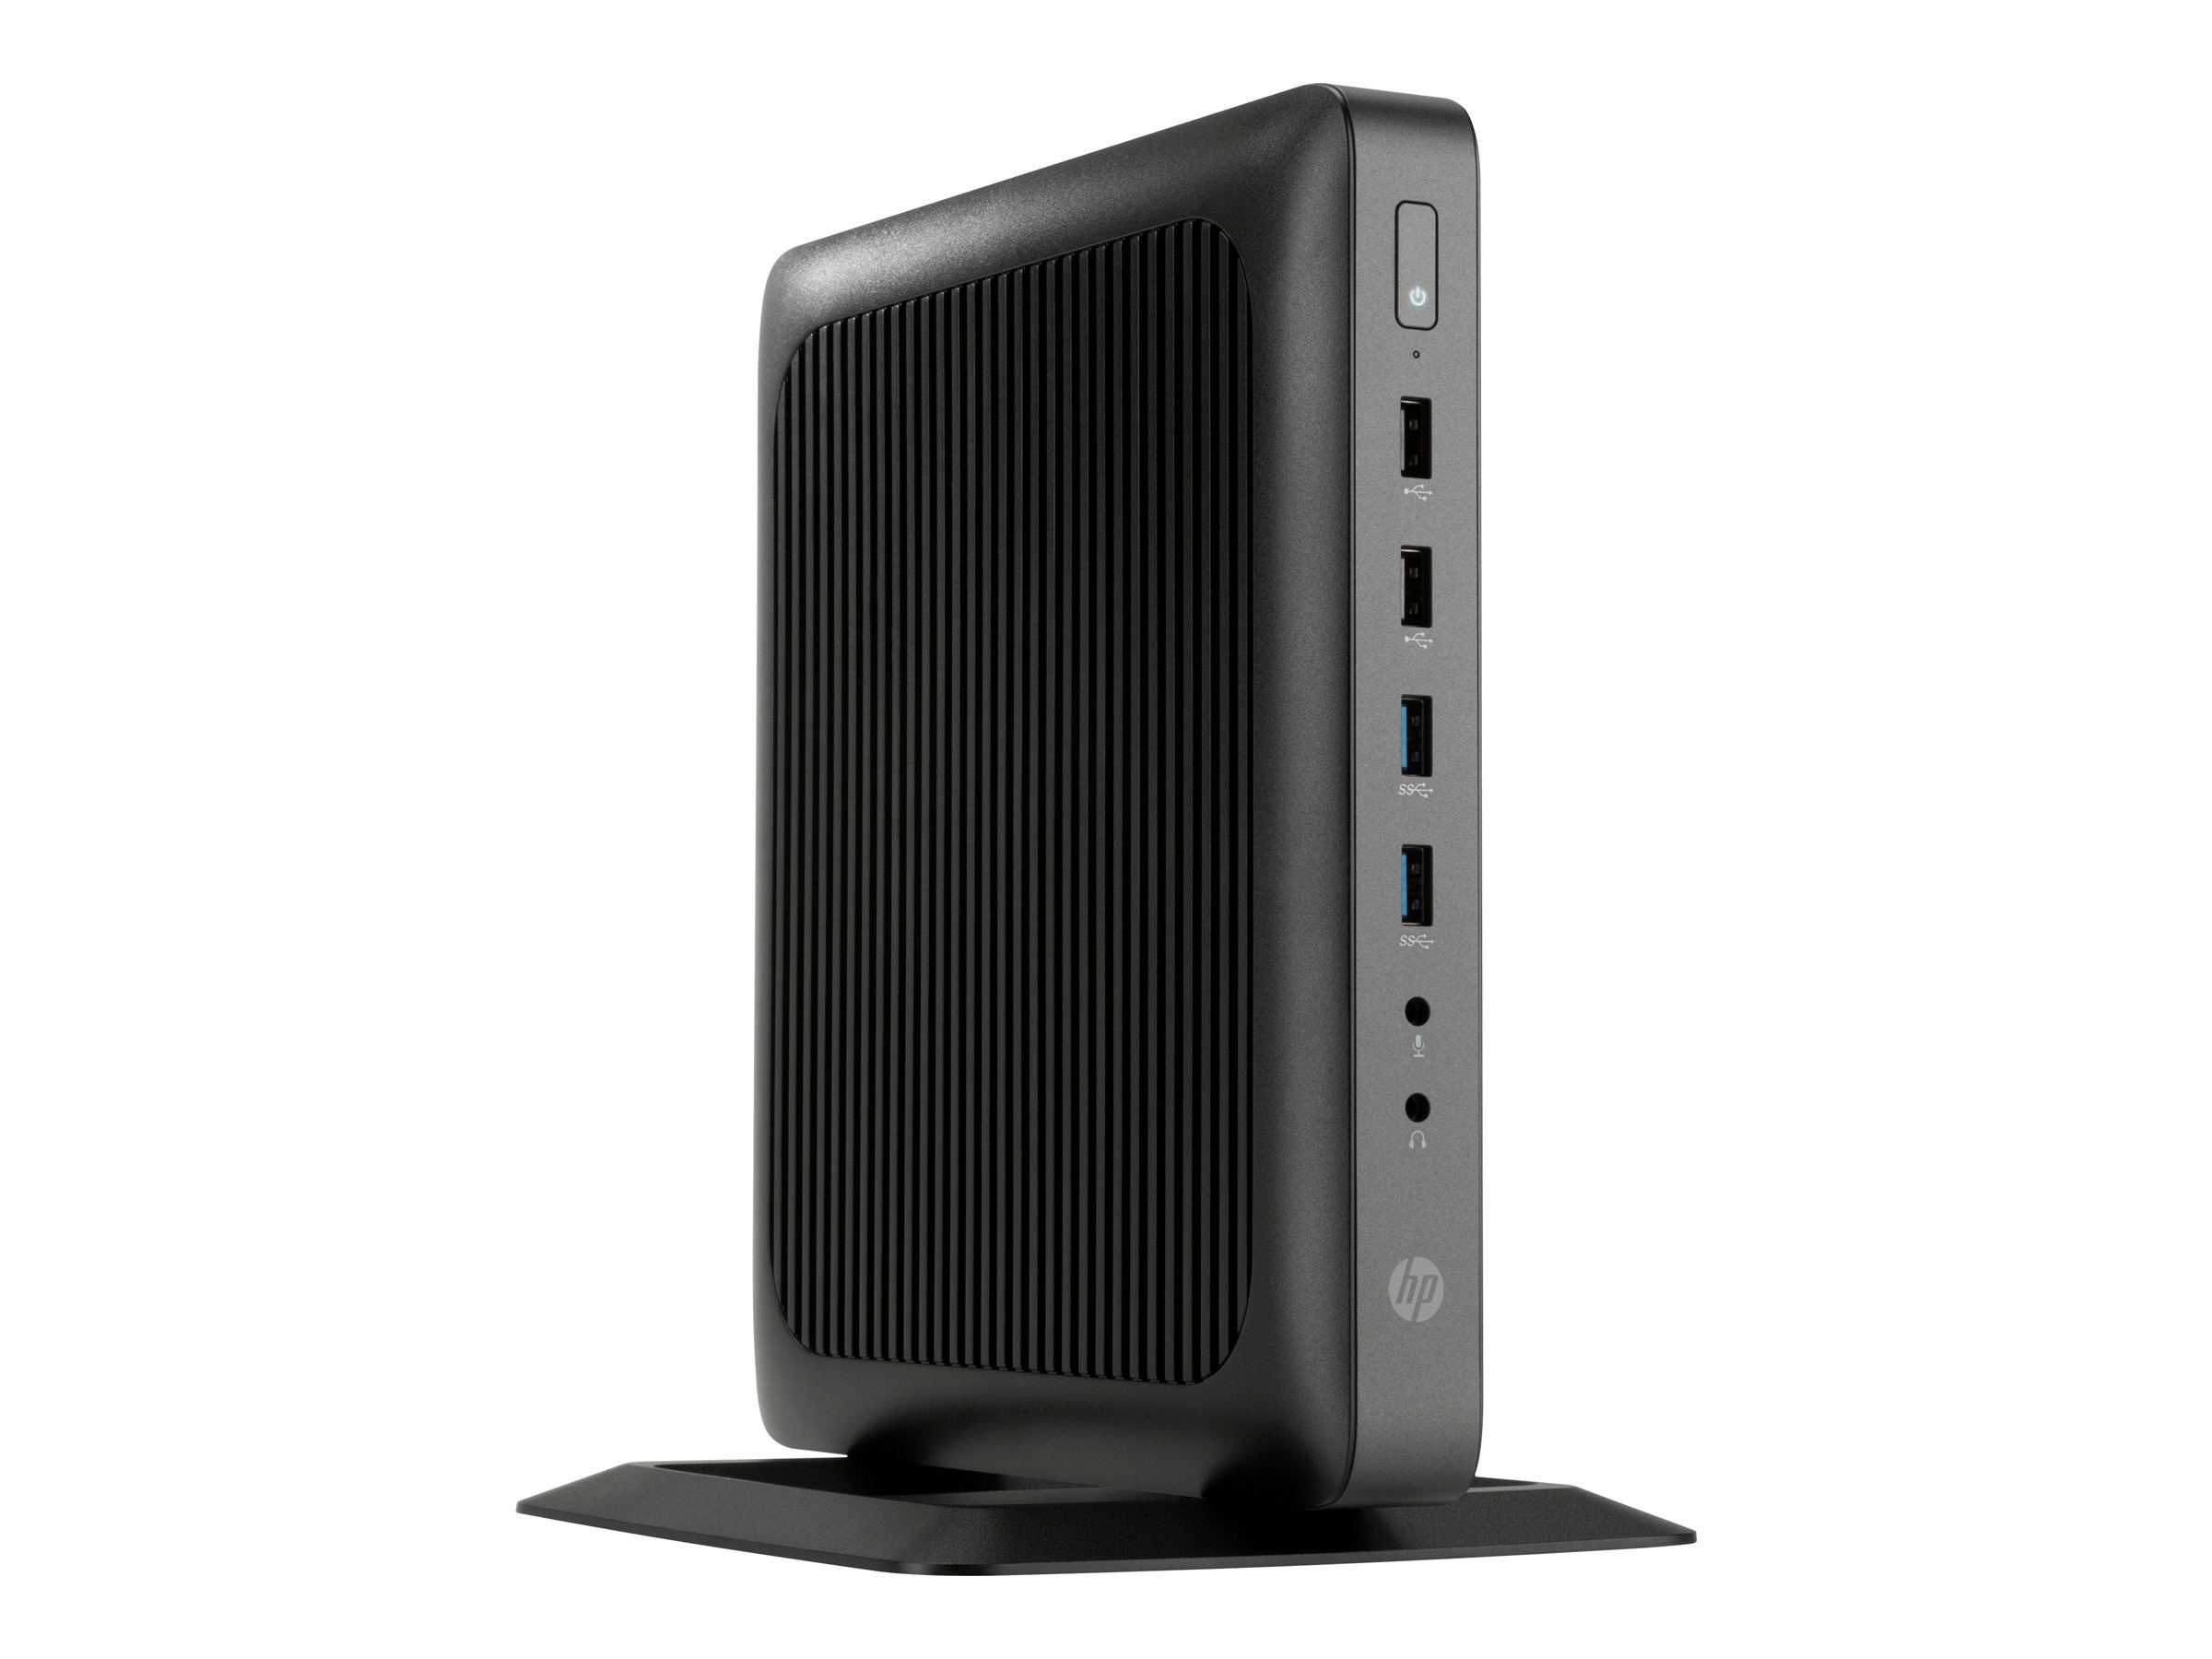 HP t620 Flexible Thin Client AMD QC GX-415GA 1.5GHz 4GB RAM 16GB Flash GbE VGA WES8, G6F35AA#ABA